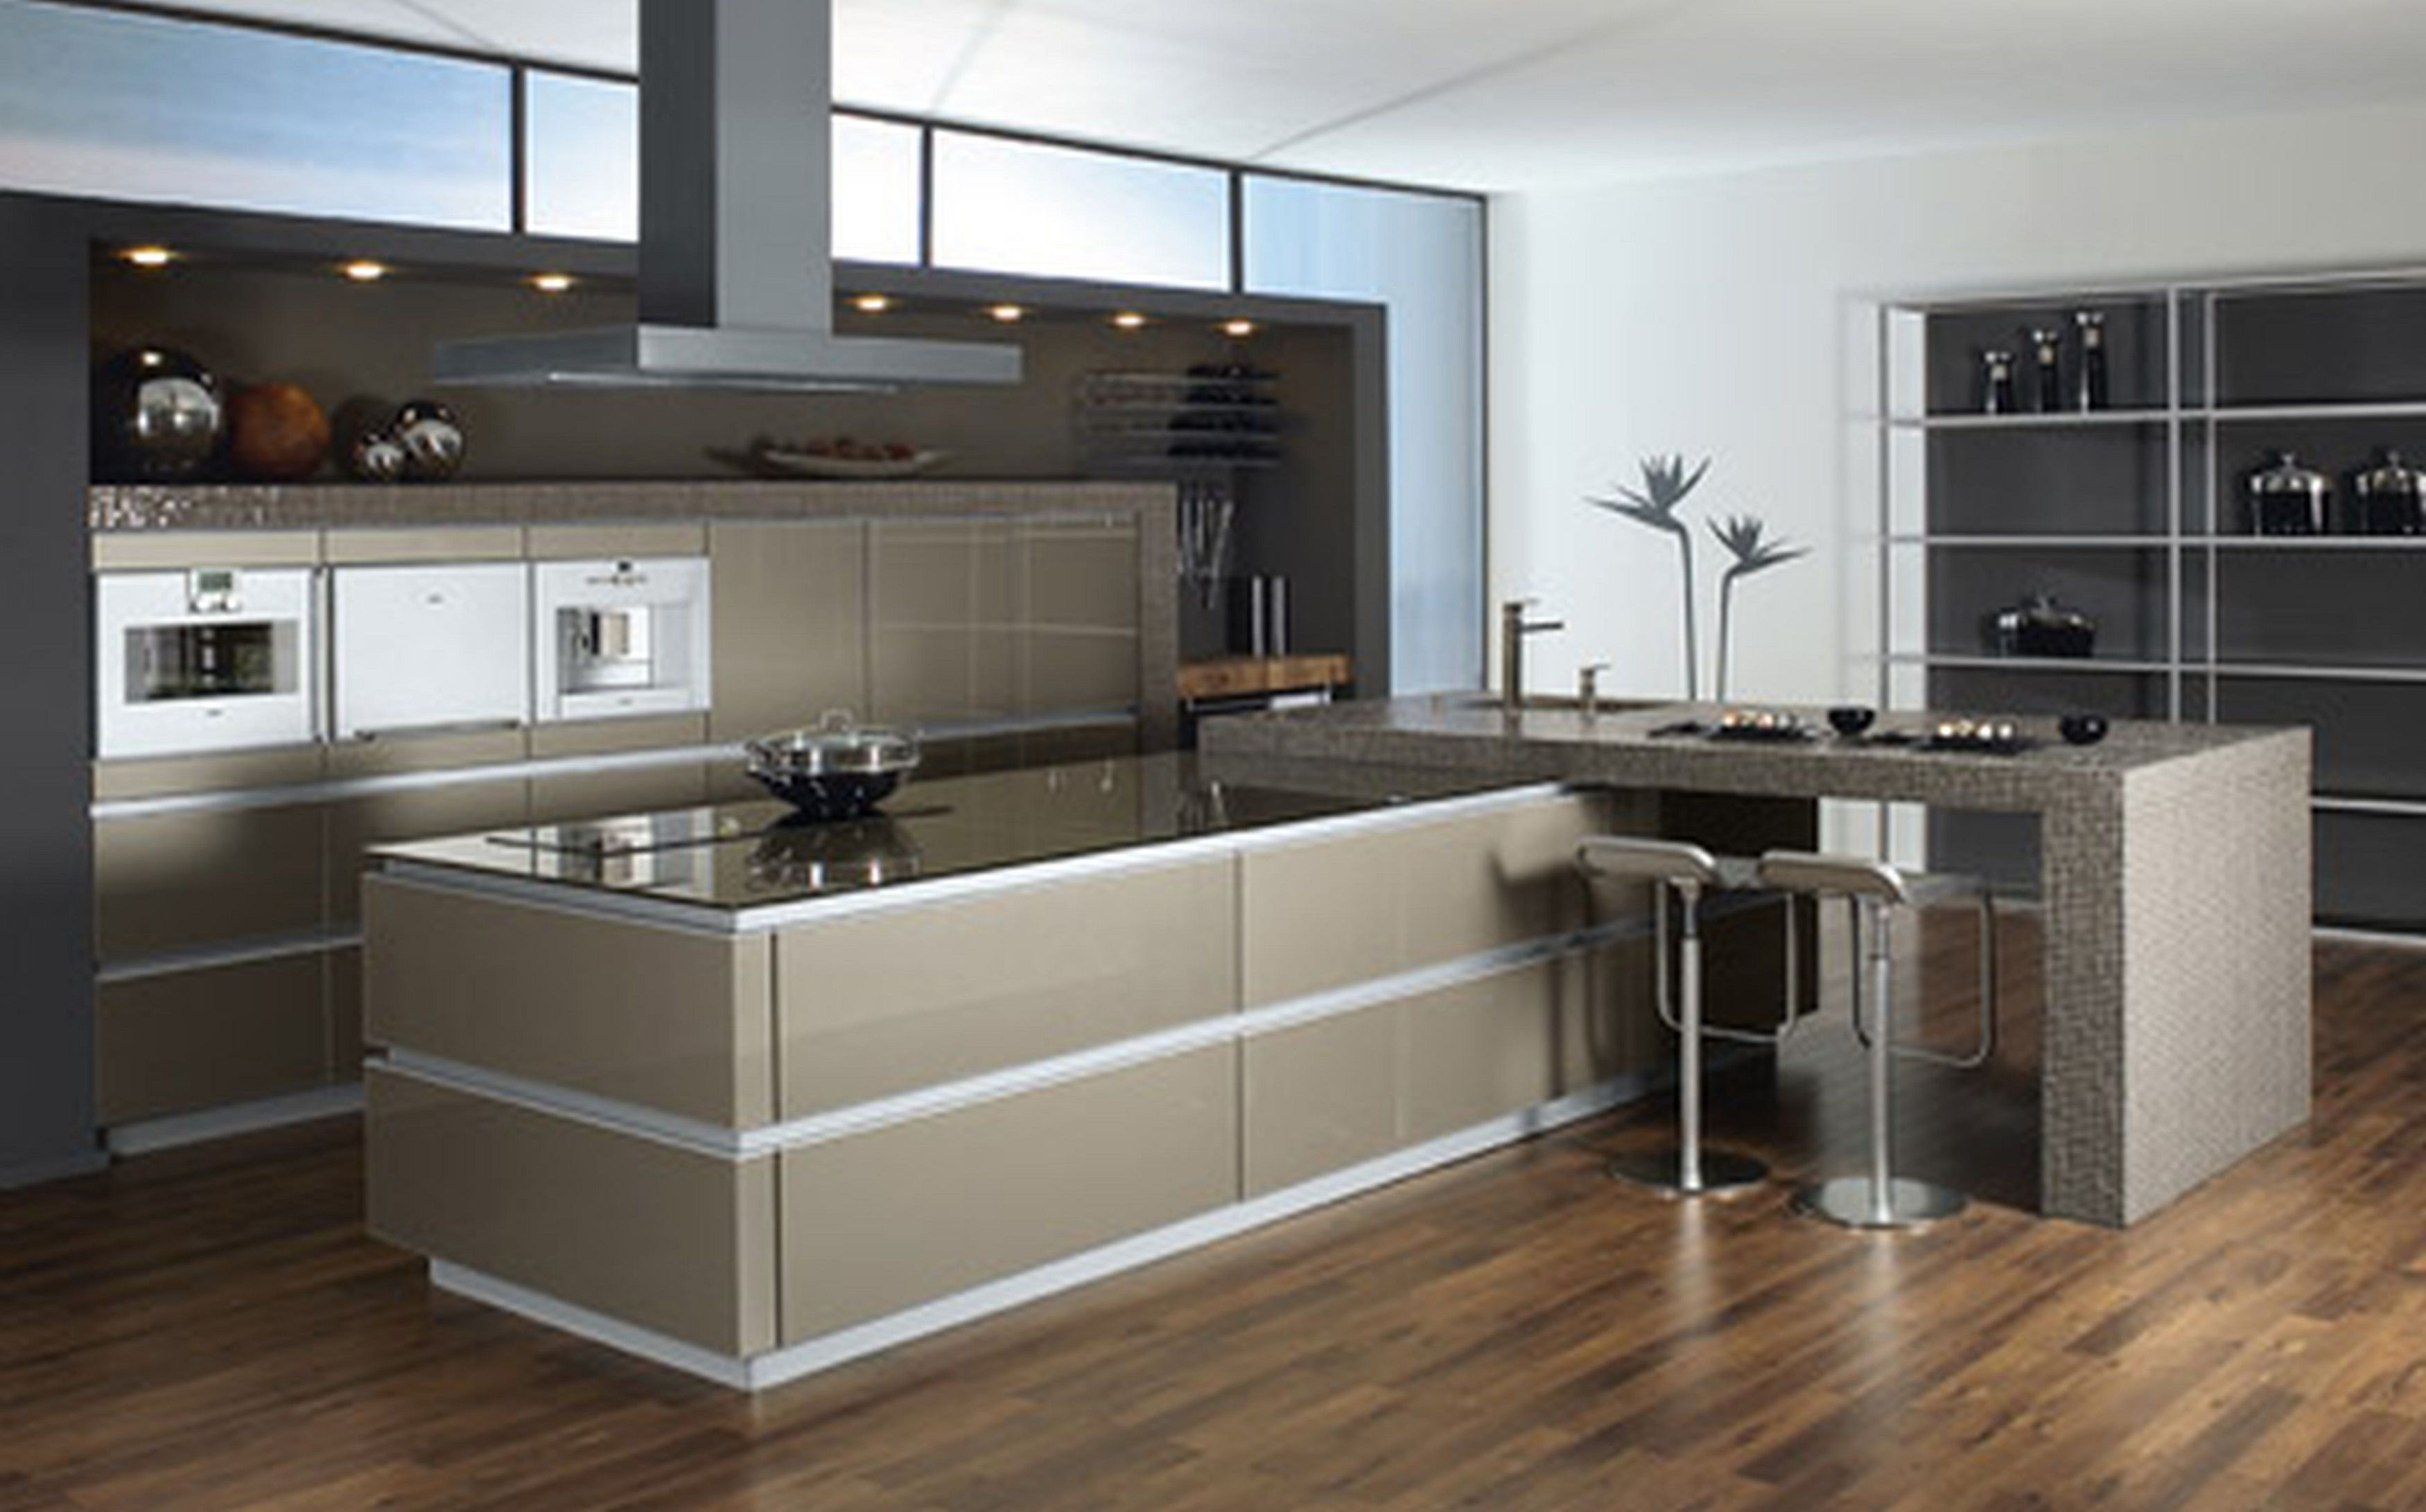 Ideas For Kitchen Islands In Small Kitchens Kitchen Kitchen Islands Lighting Ideas Kitchen Island Ideas For